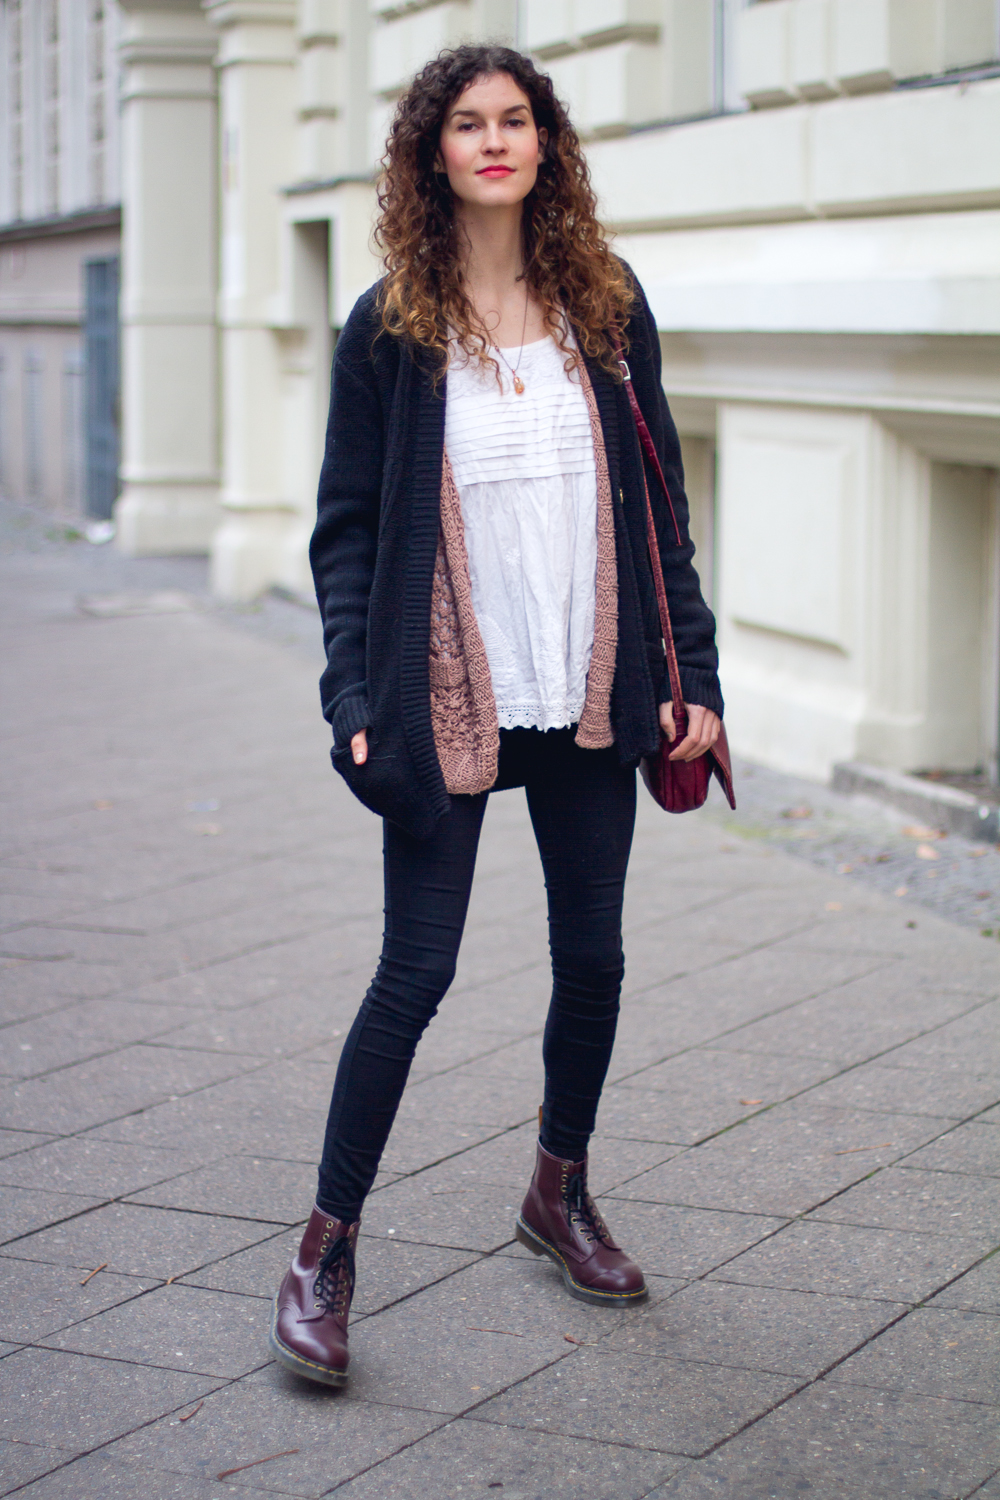 amp; Heylilahey Knits Double Dr Martens qRCUnFR